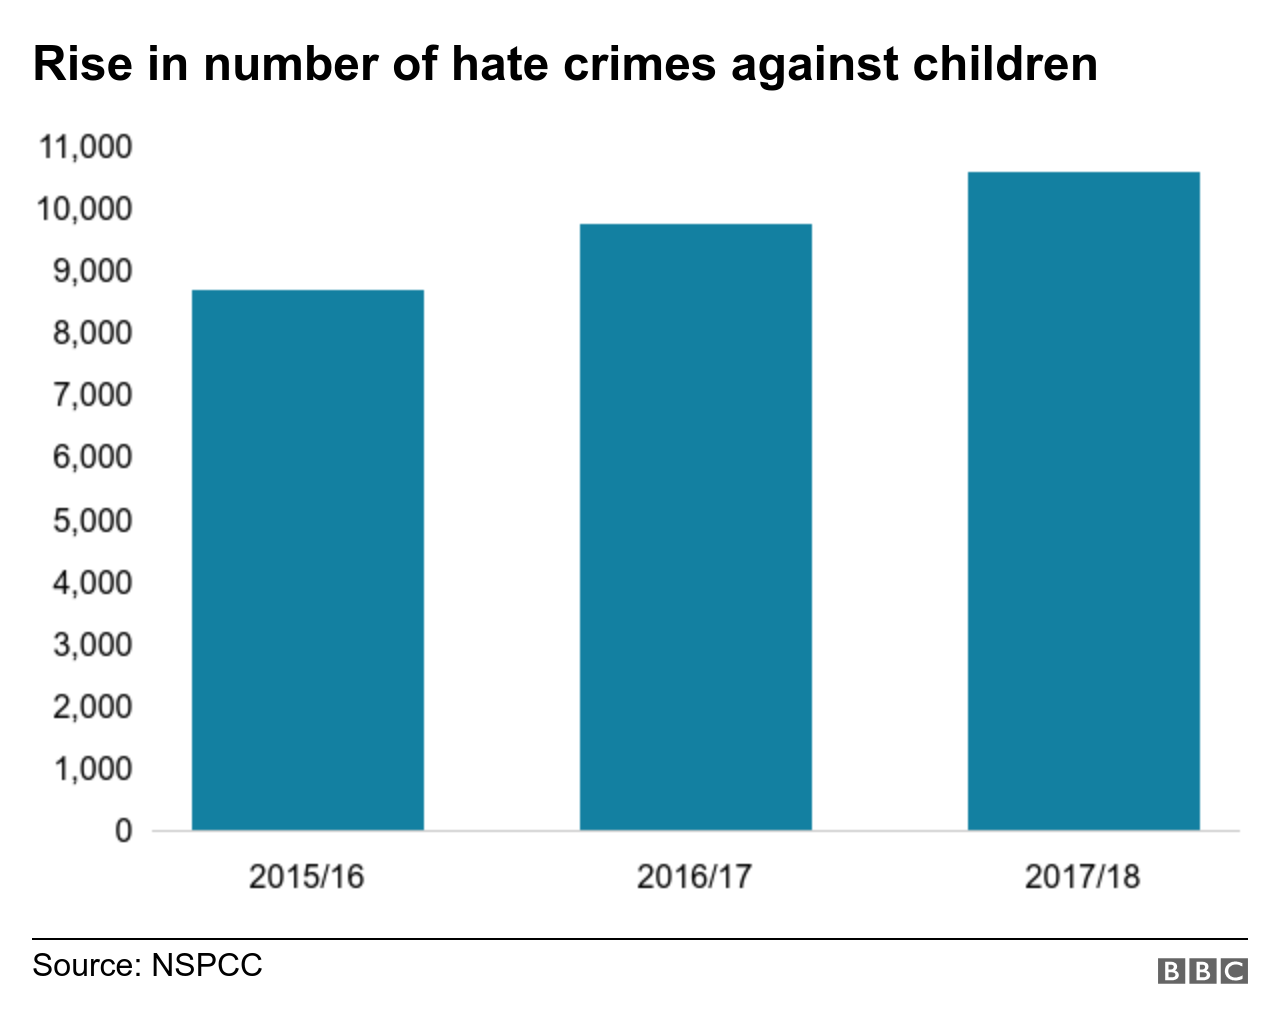 Chart showing a rise in the number of hate crimes against children